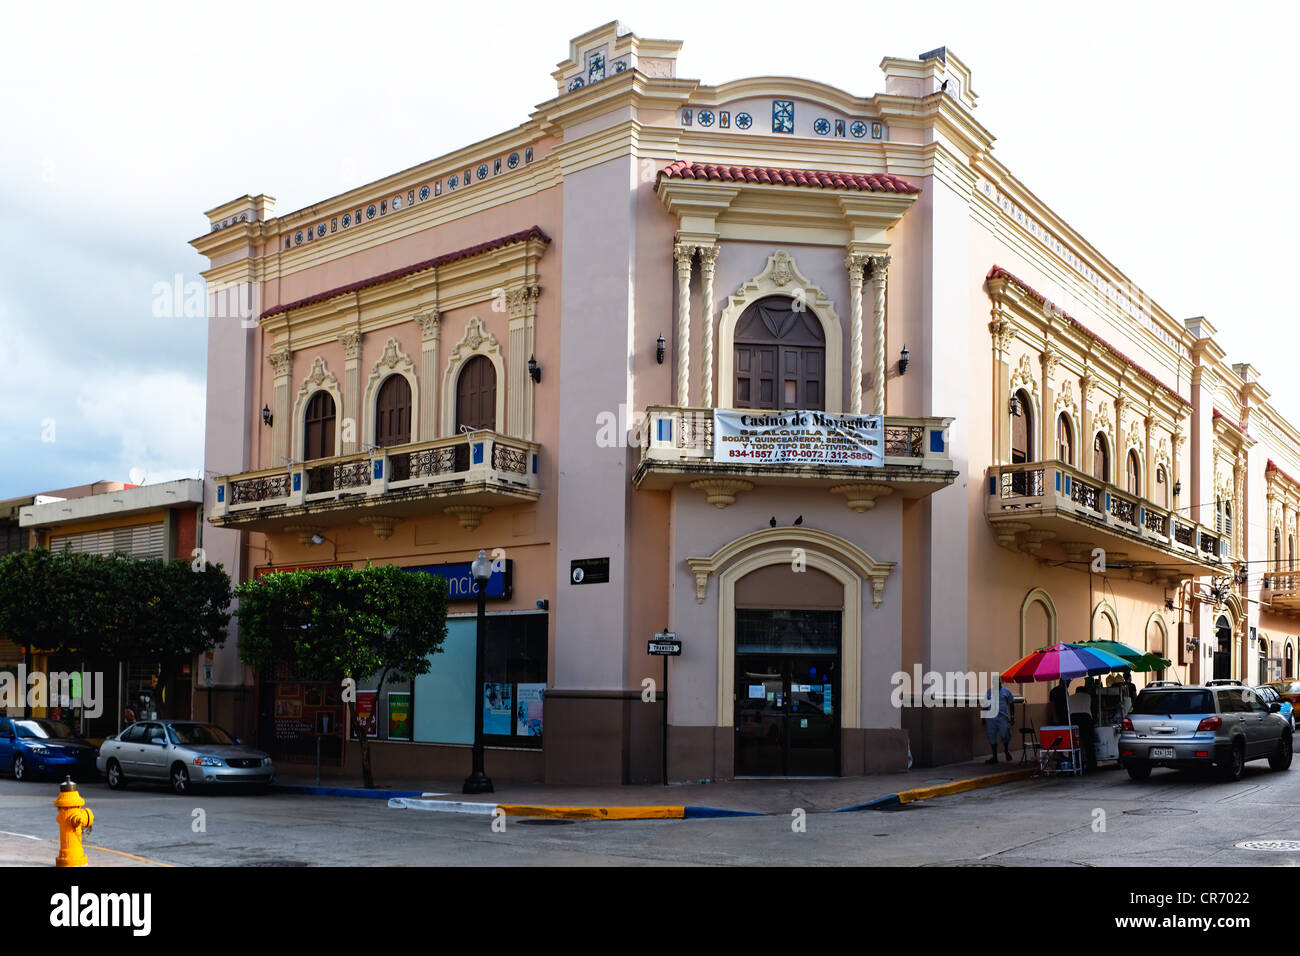 Frontal View of the Casino of Mayaguez, Puerto Rico - Stock Image